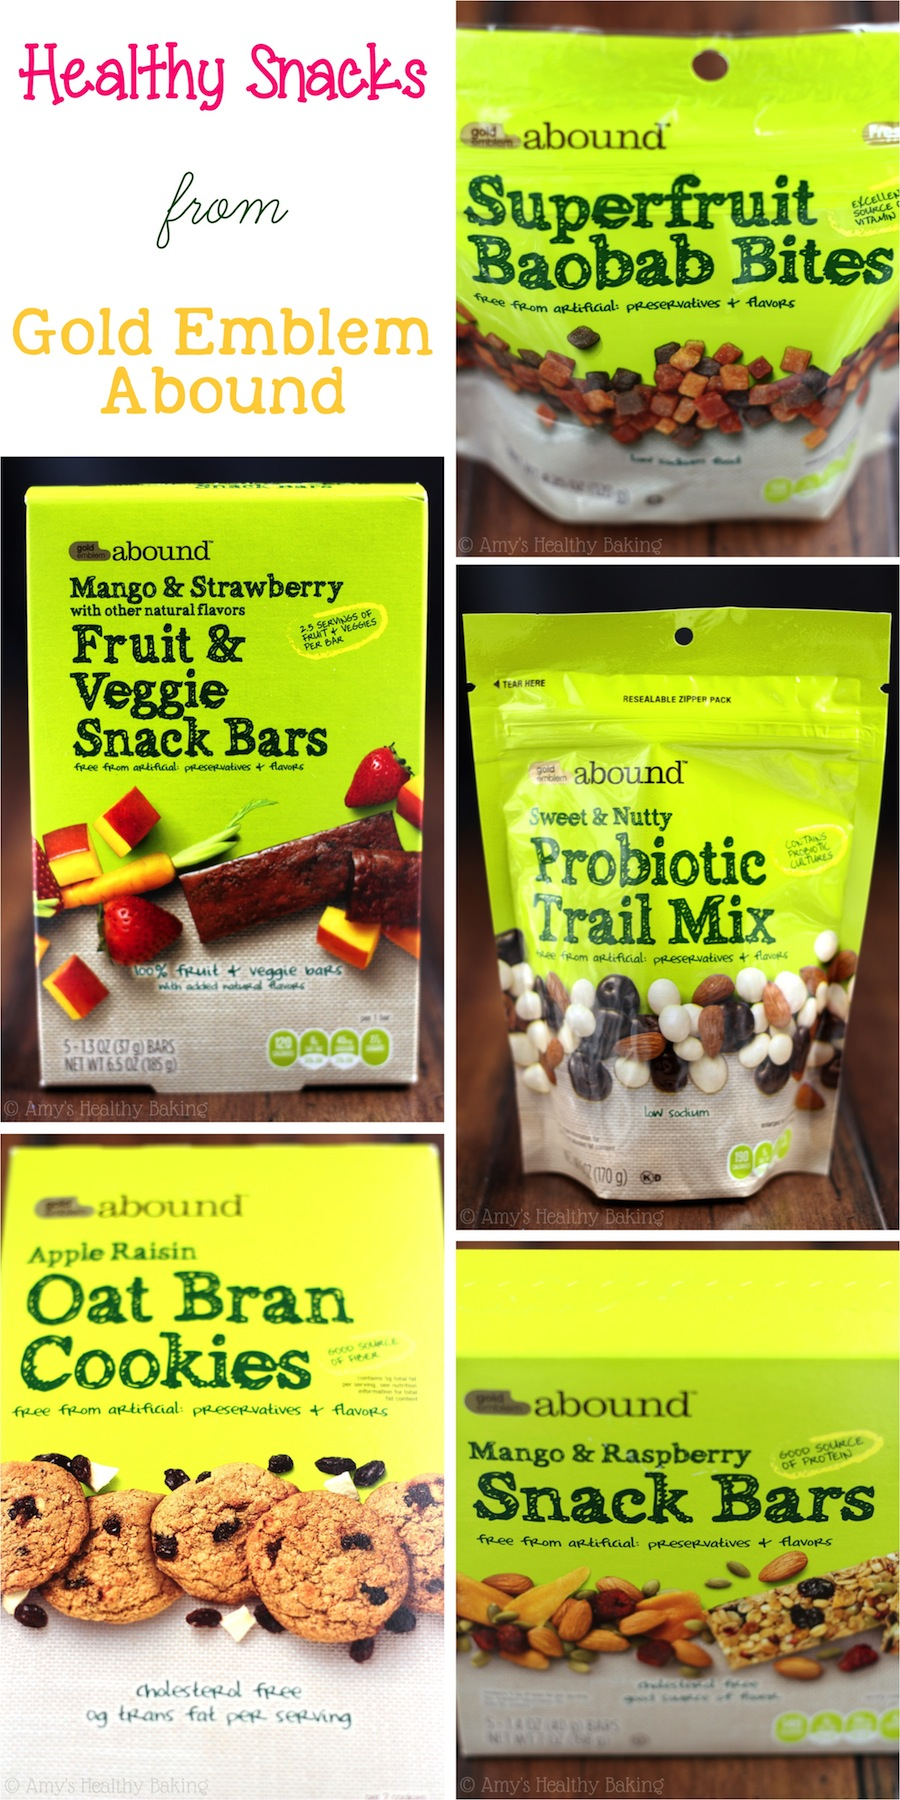 {GIVEAWAY} Healthy snacks from CVS Gold Emblem Abound! Enter to win on amyshealthybaking.com by 7/9/14!